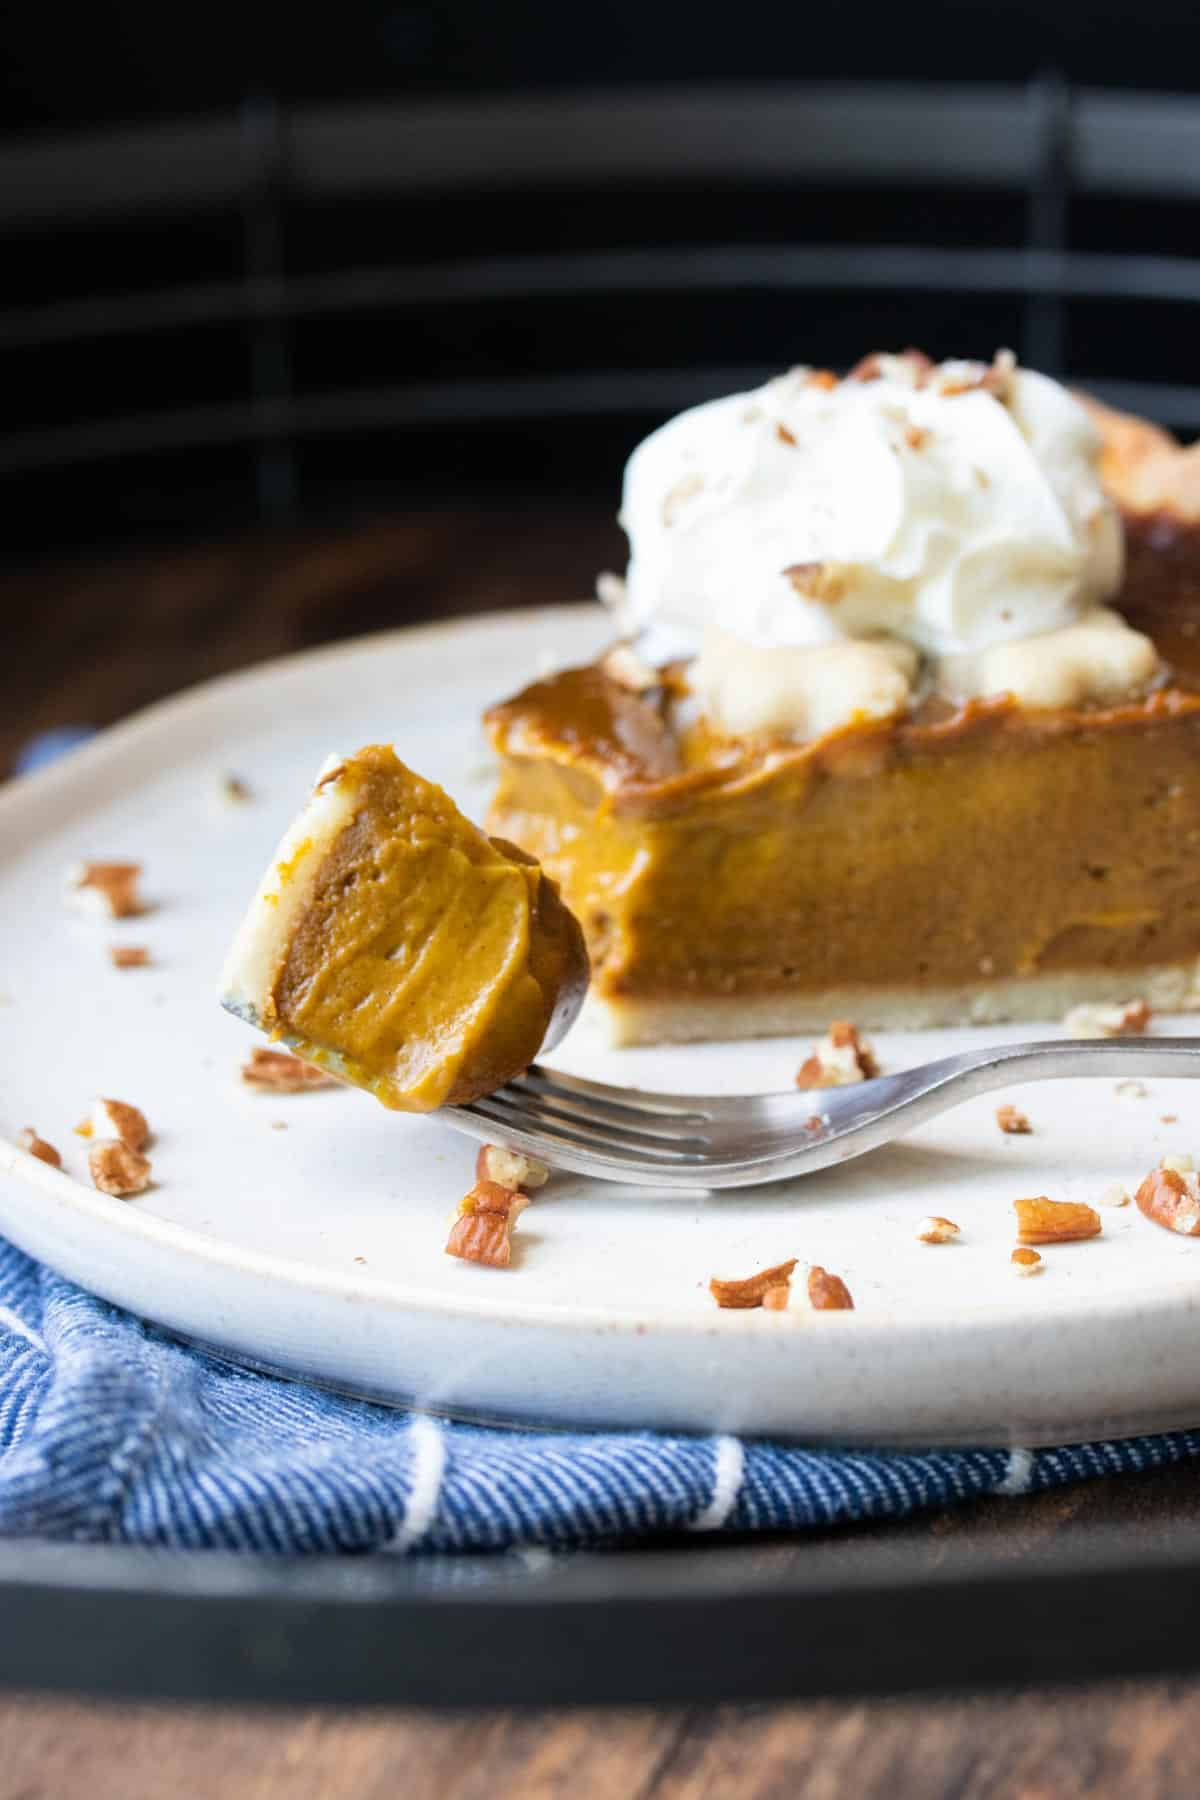 Front view of a fork with a bite of pumpkin pie on a plate